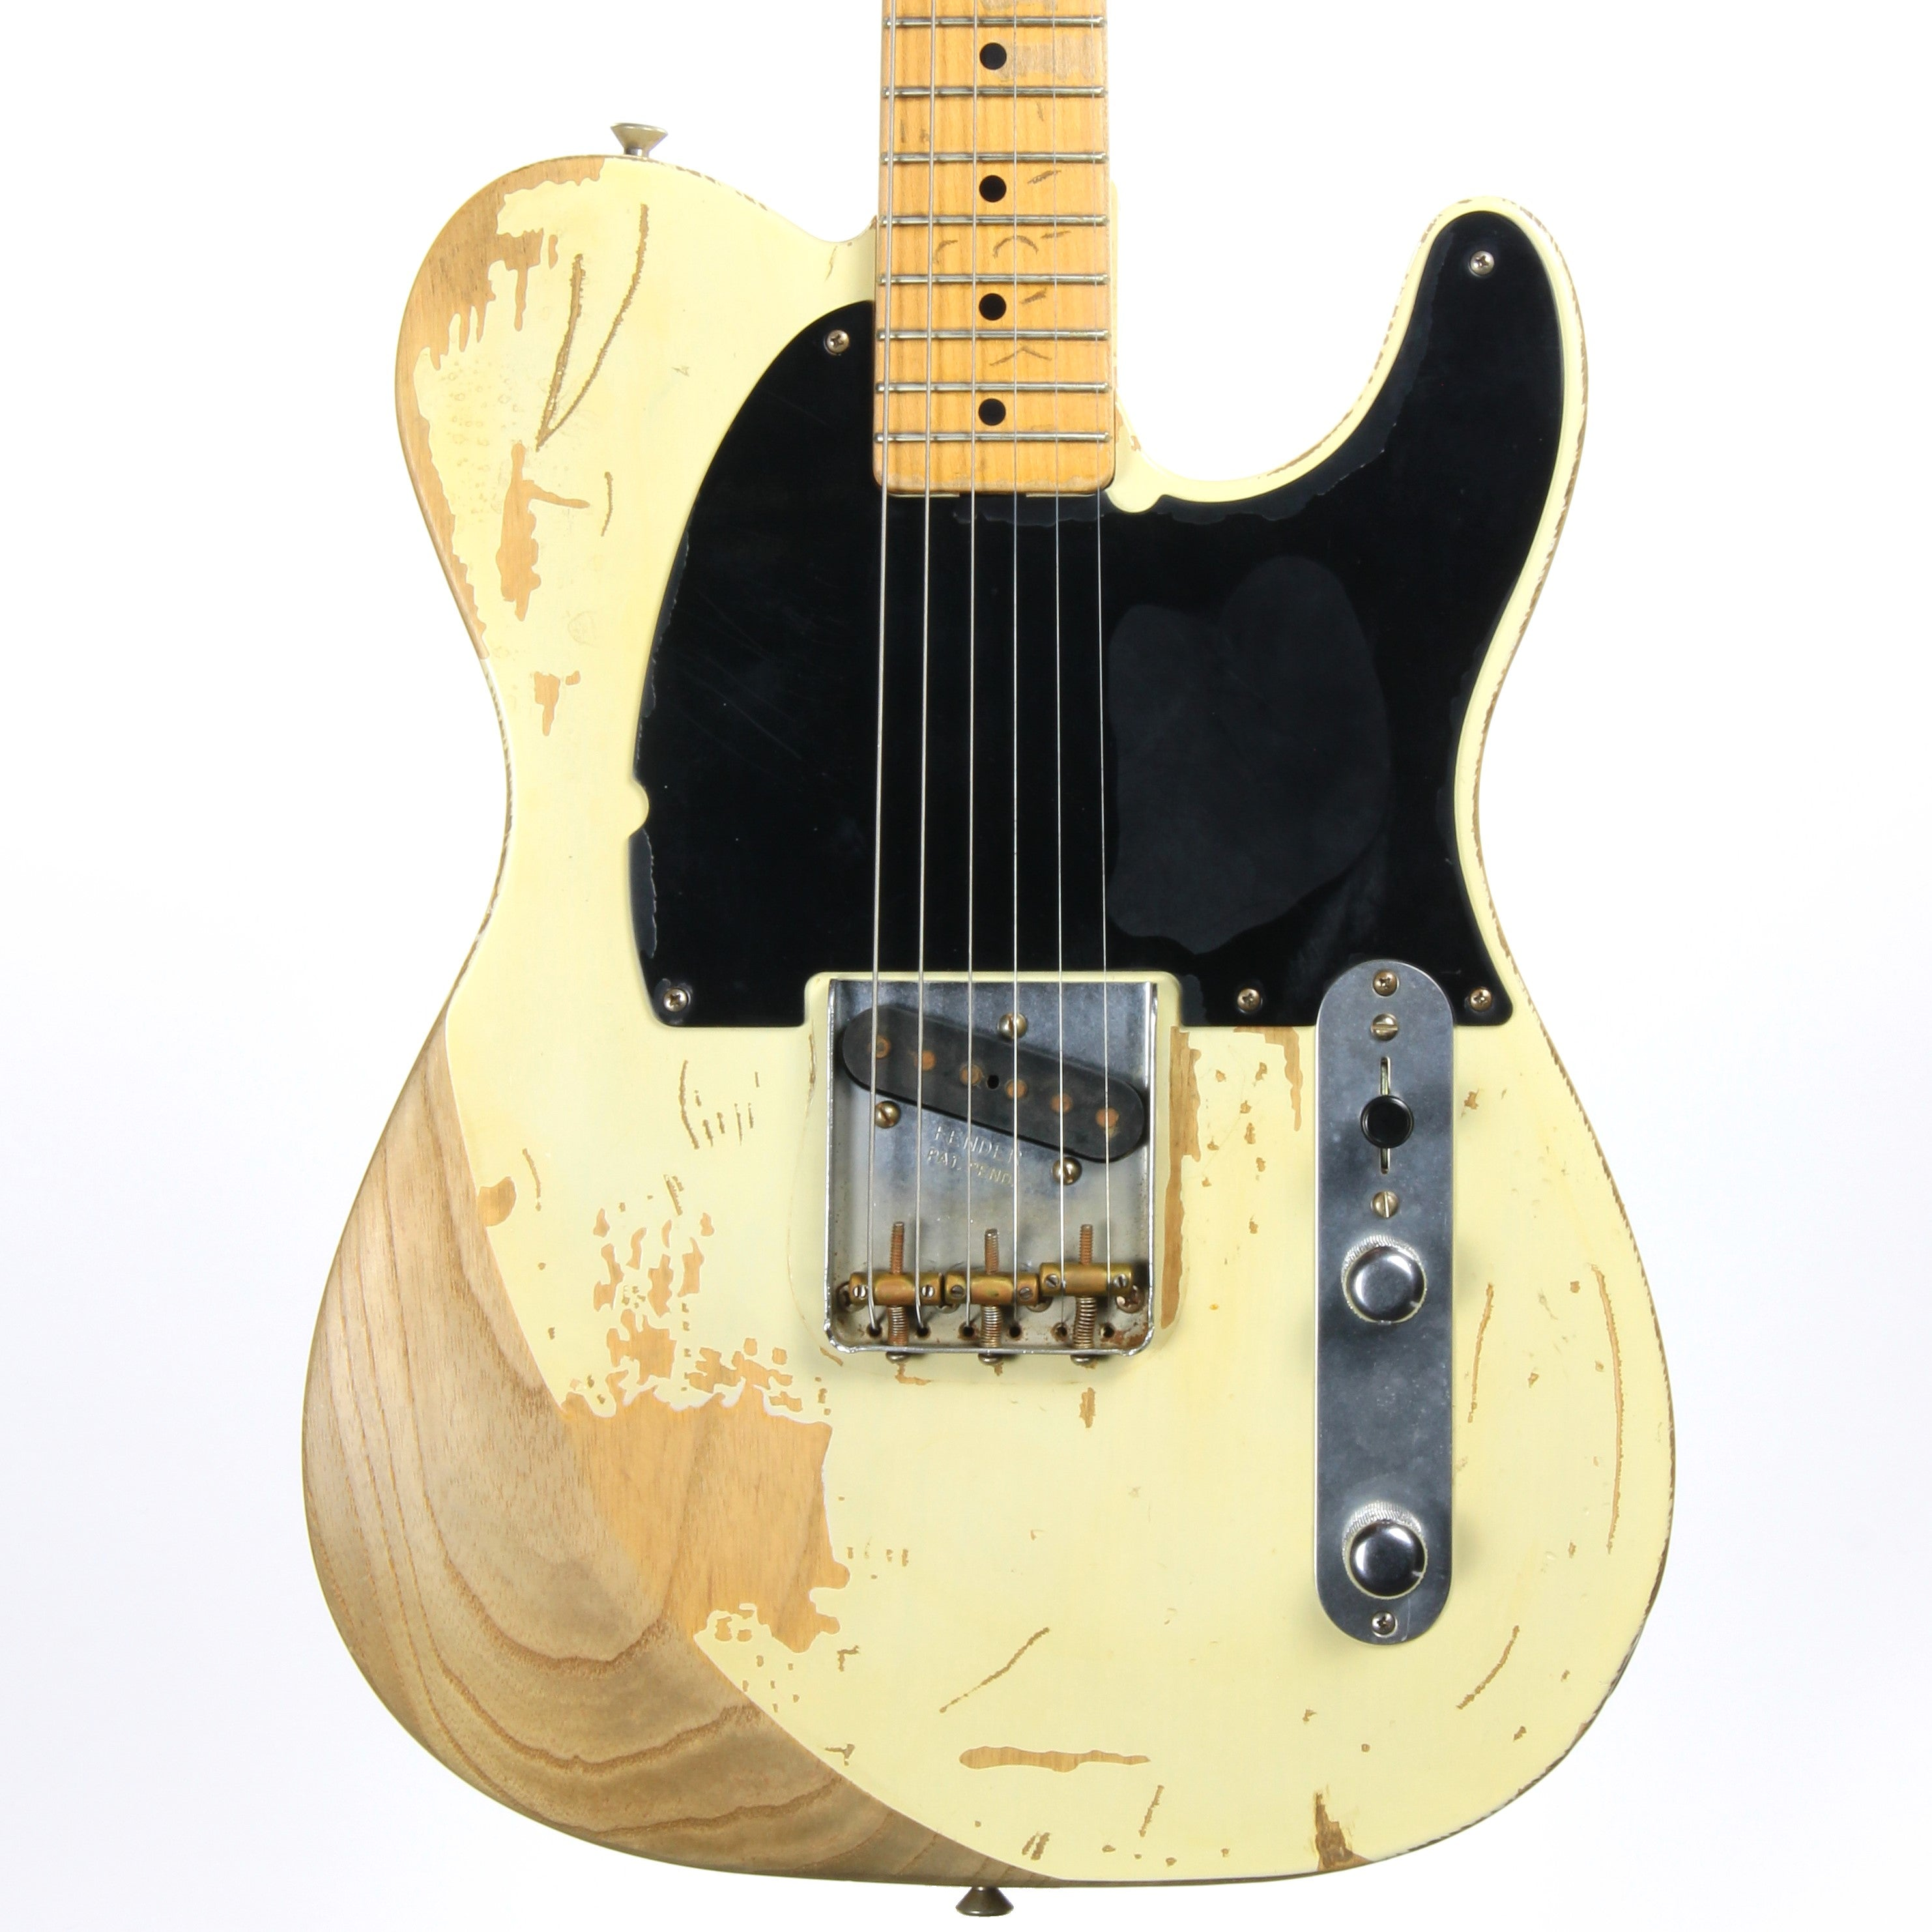 2006 Fender Custom Shop JOHN ENGLISH Masterbuilt JEFF BECK 1954 Esquire Relic Telecaster Blackguard